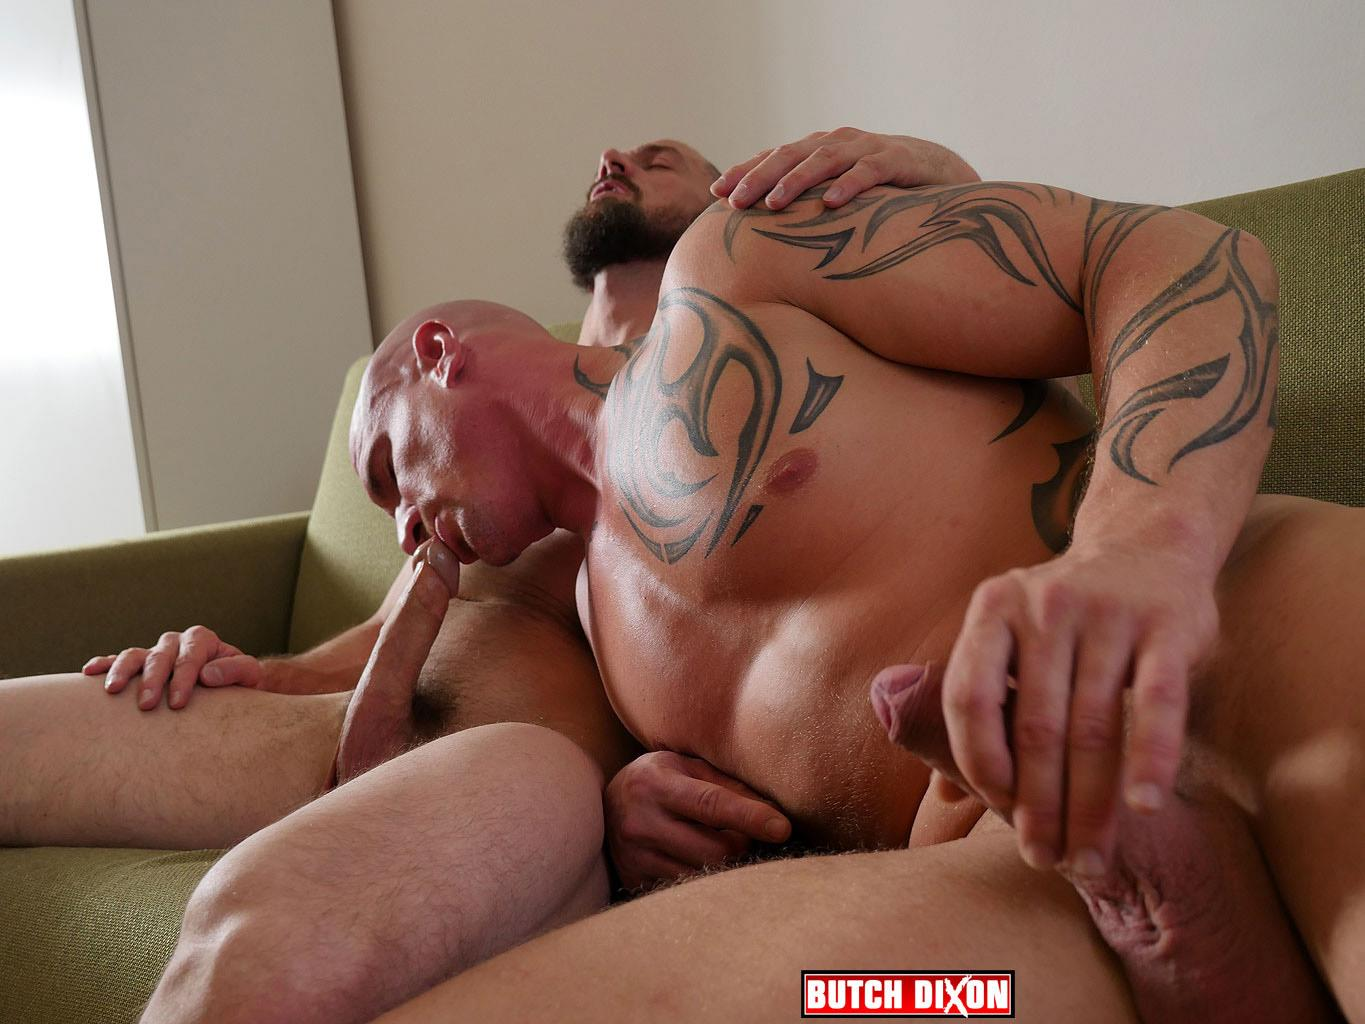 Butch-Dixon-Erik-Lenn-and-Mike-Bourne-Masculine-Guys-Fucking-Bareback-Amateur-Gay-Porn-08 Beefy Masculine Guys Fucking Bareback With A Big Uncut Cock